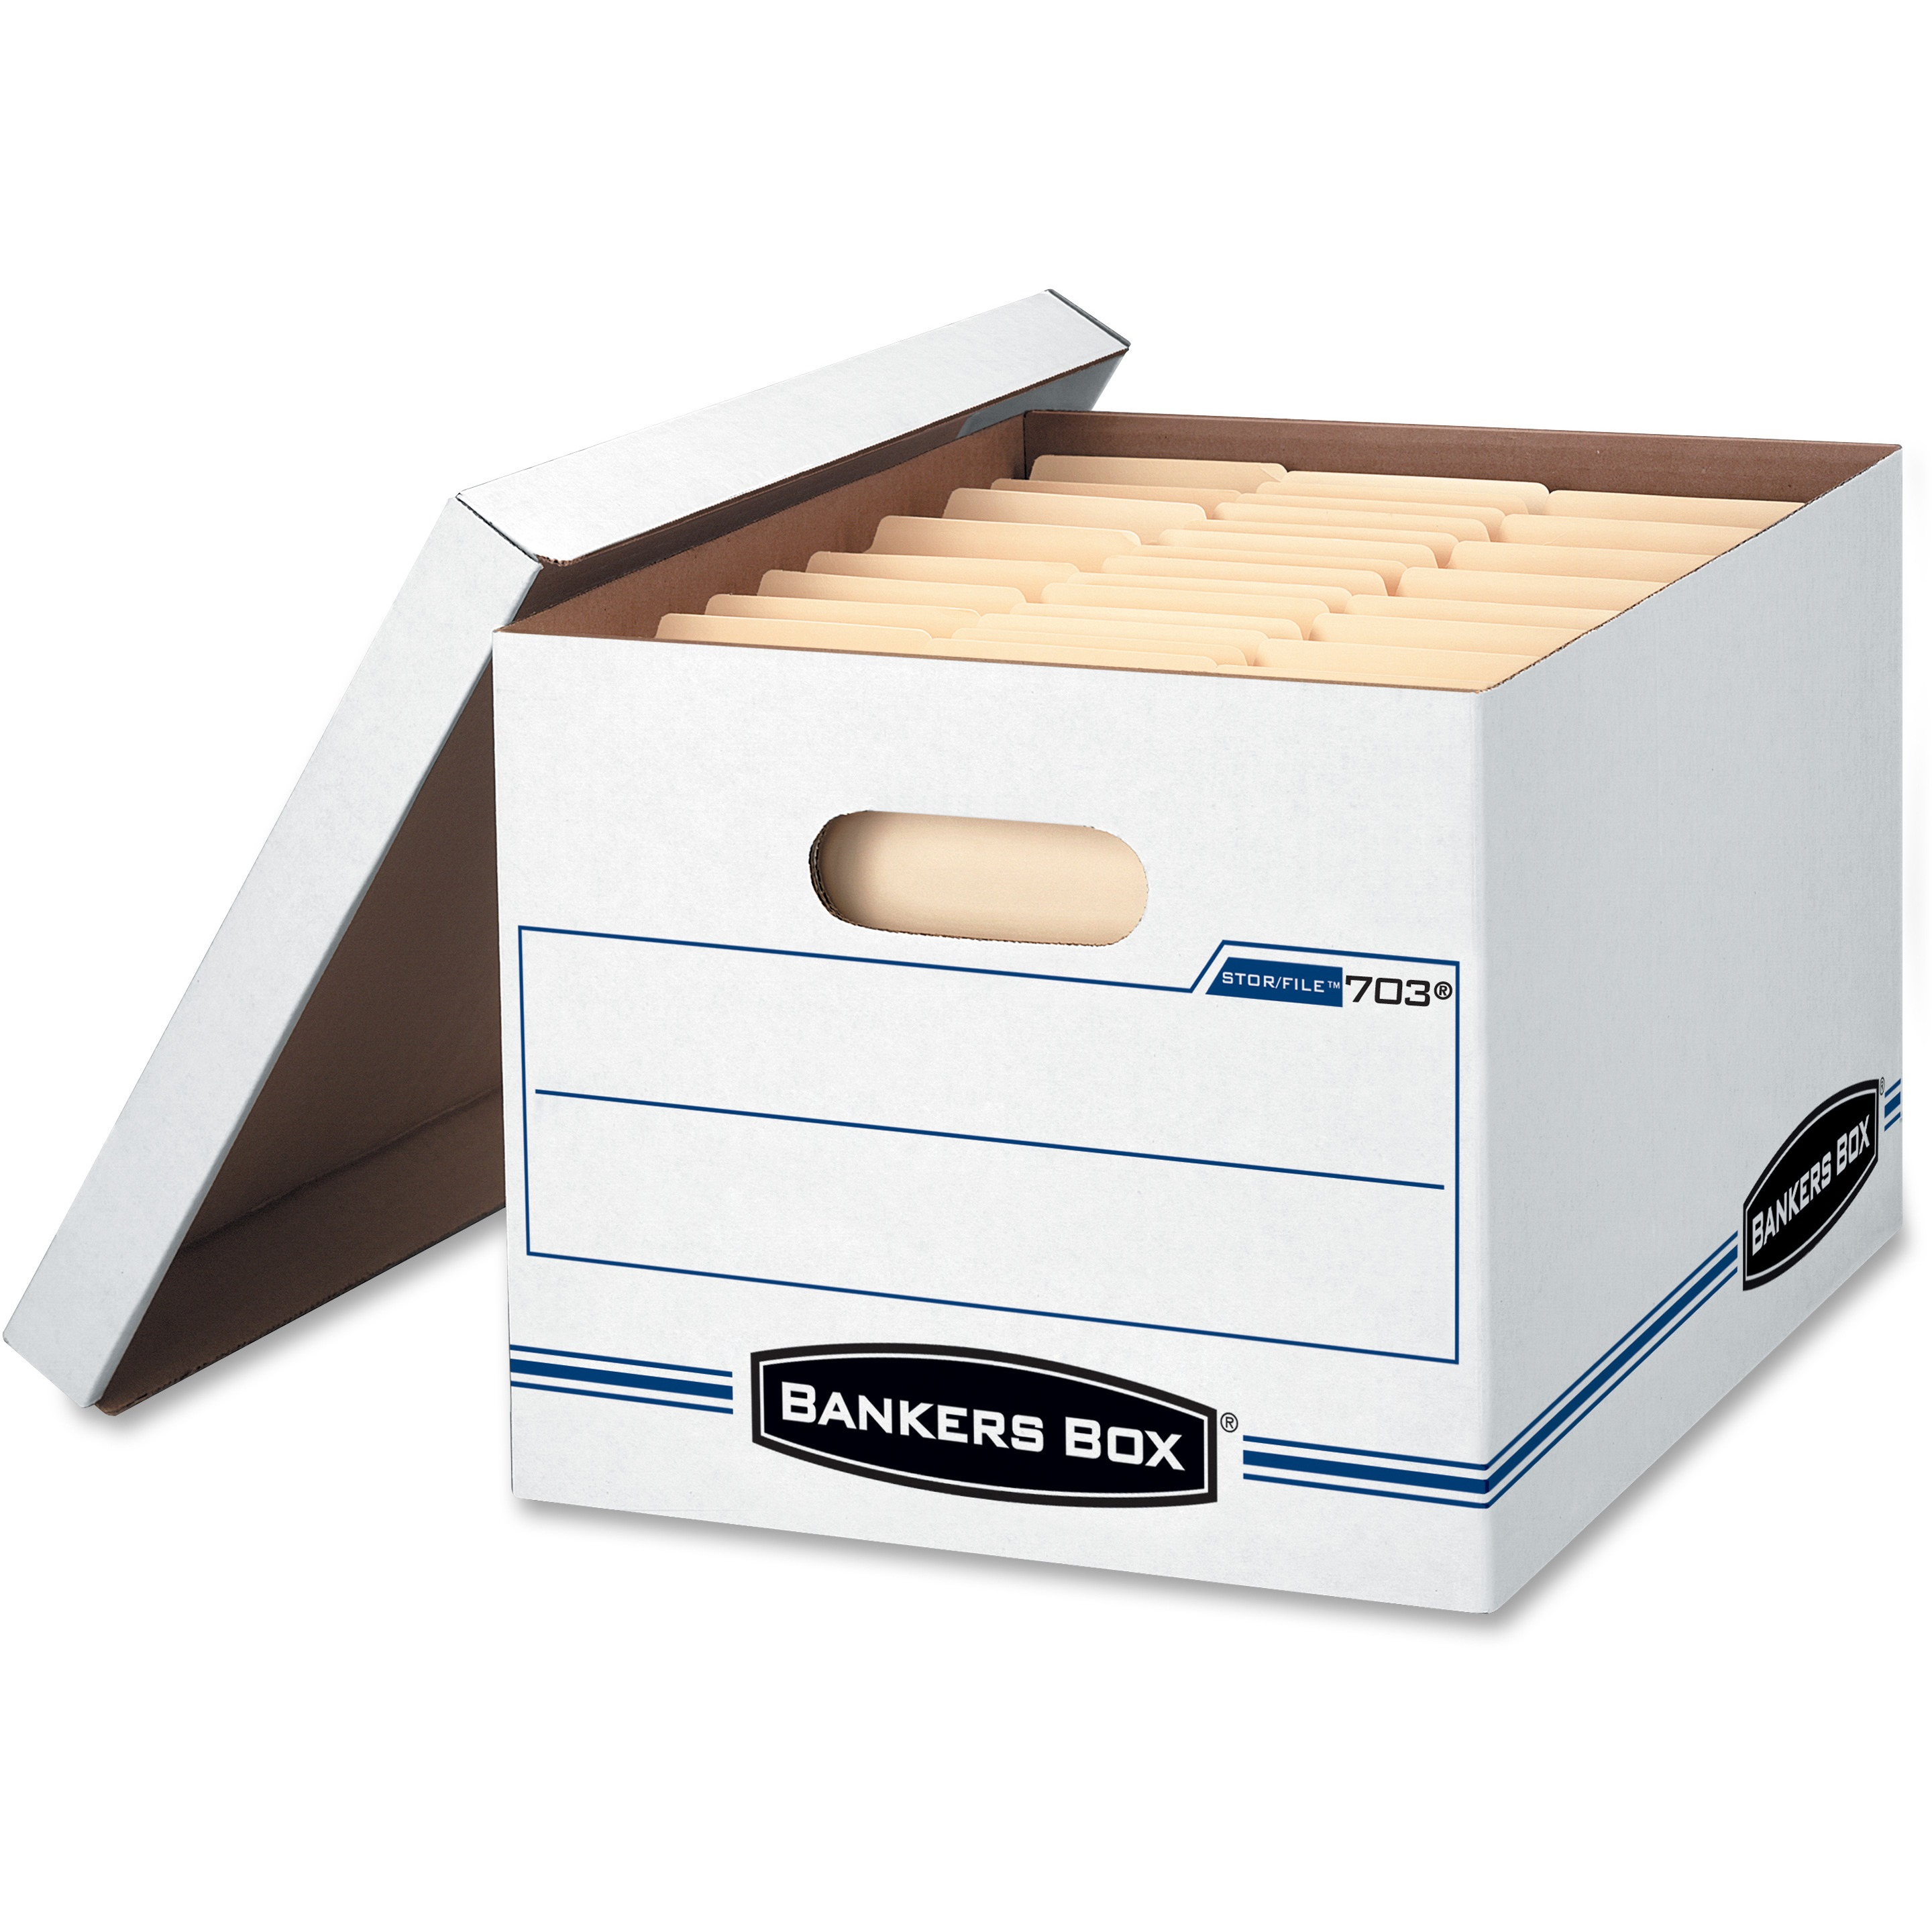 Bankers Box Bankers Lift-off Lid Box Stor/File Box, 6 / Pack (Quantity)